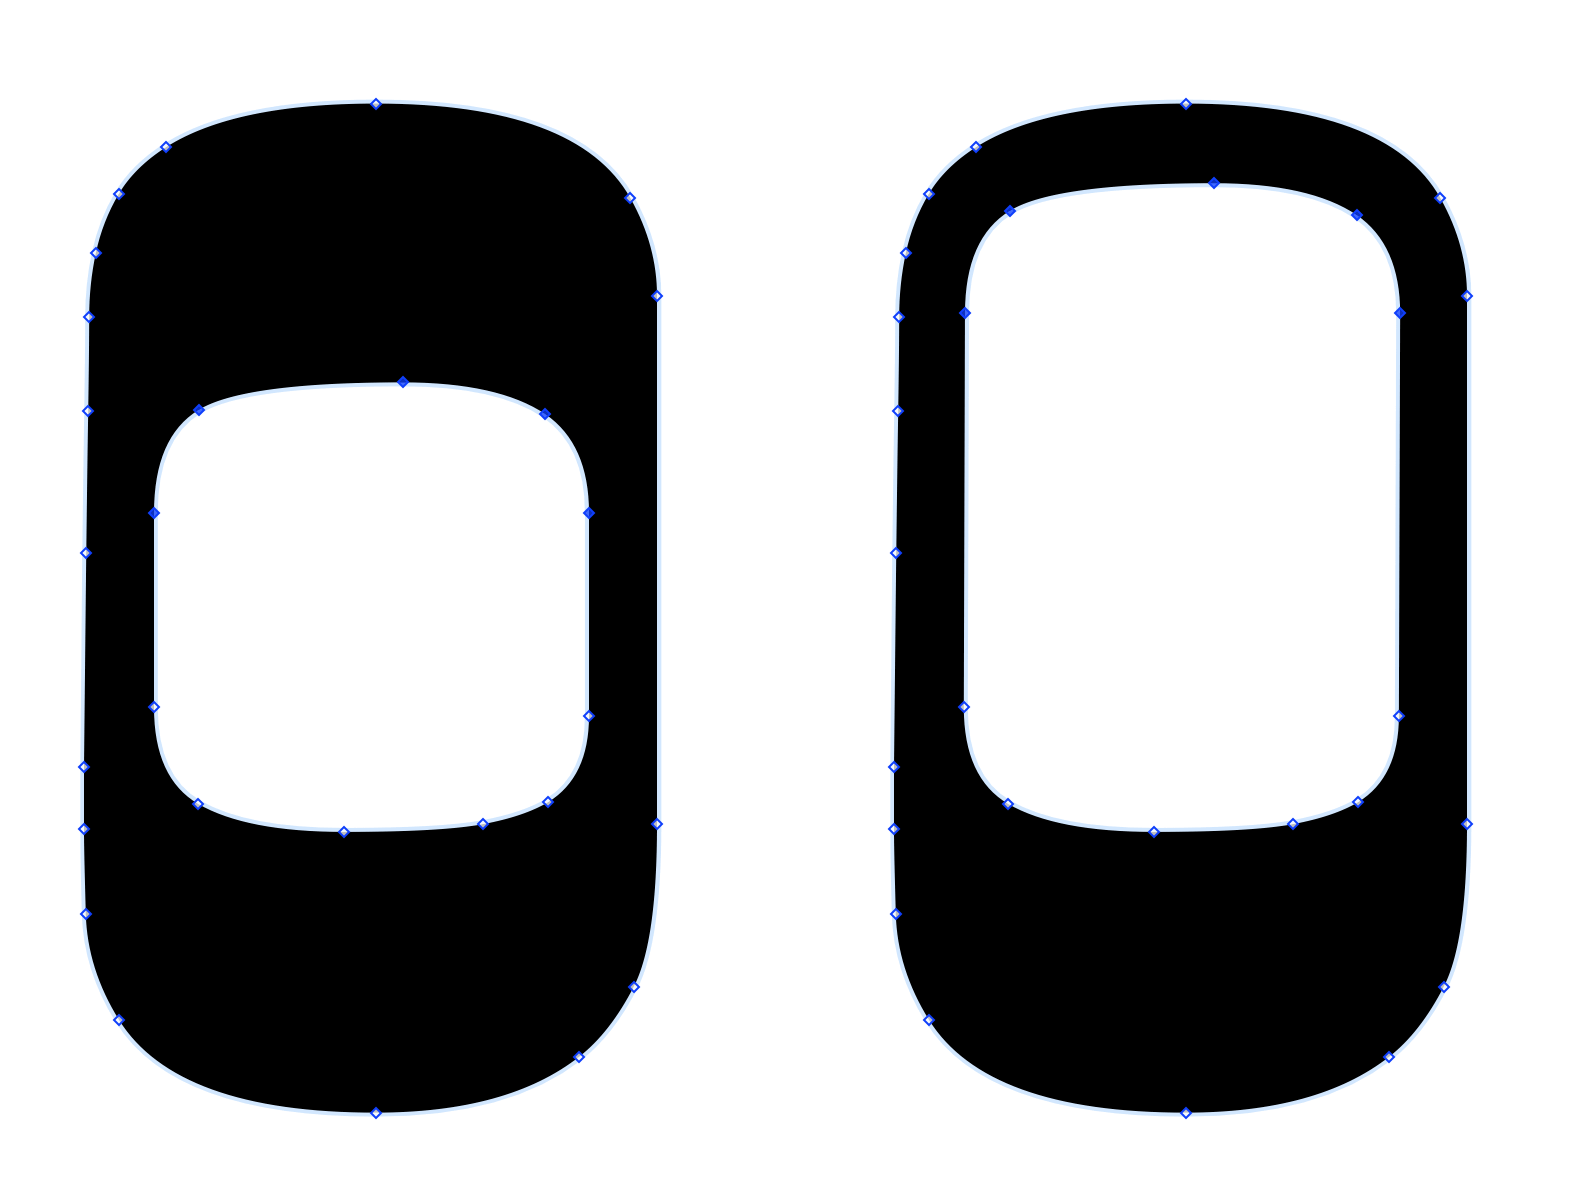 This shows two Oh characters side by side. The Oh on the left has the top five vector points inside the shape selected. The Oh on the right shows that same Oh character after the selected vector points have been moved upward within the character.